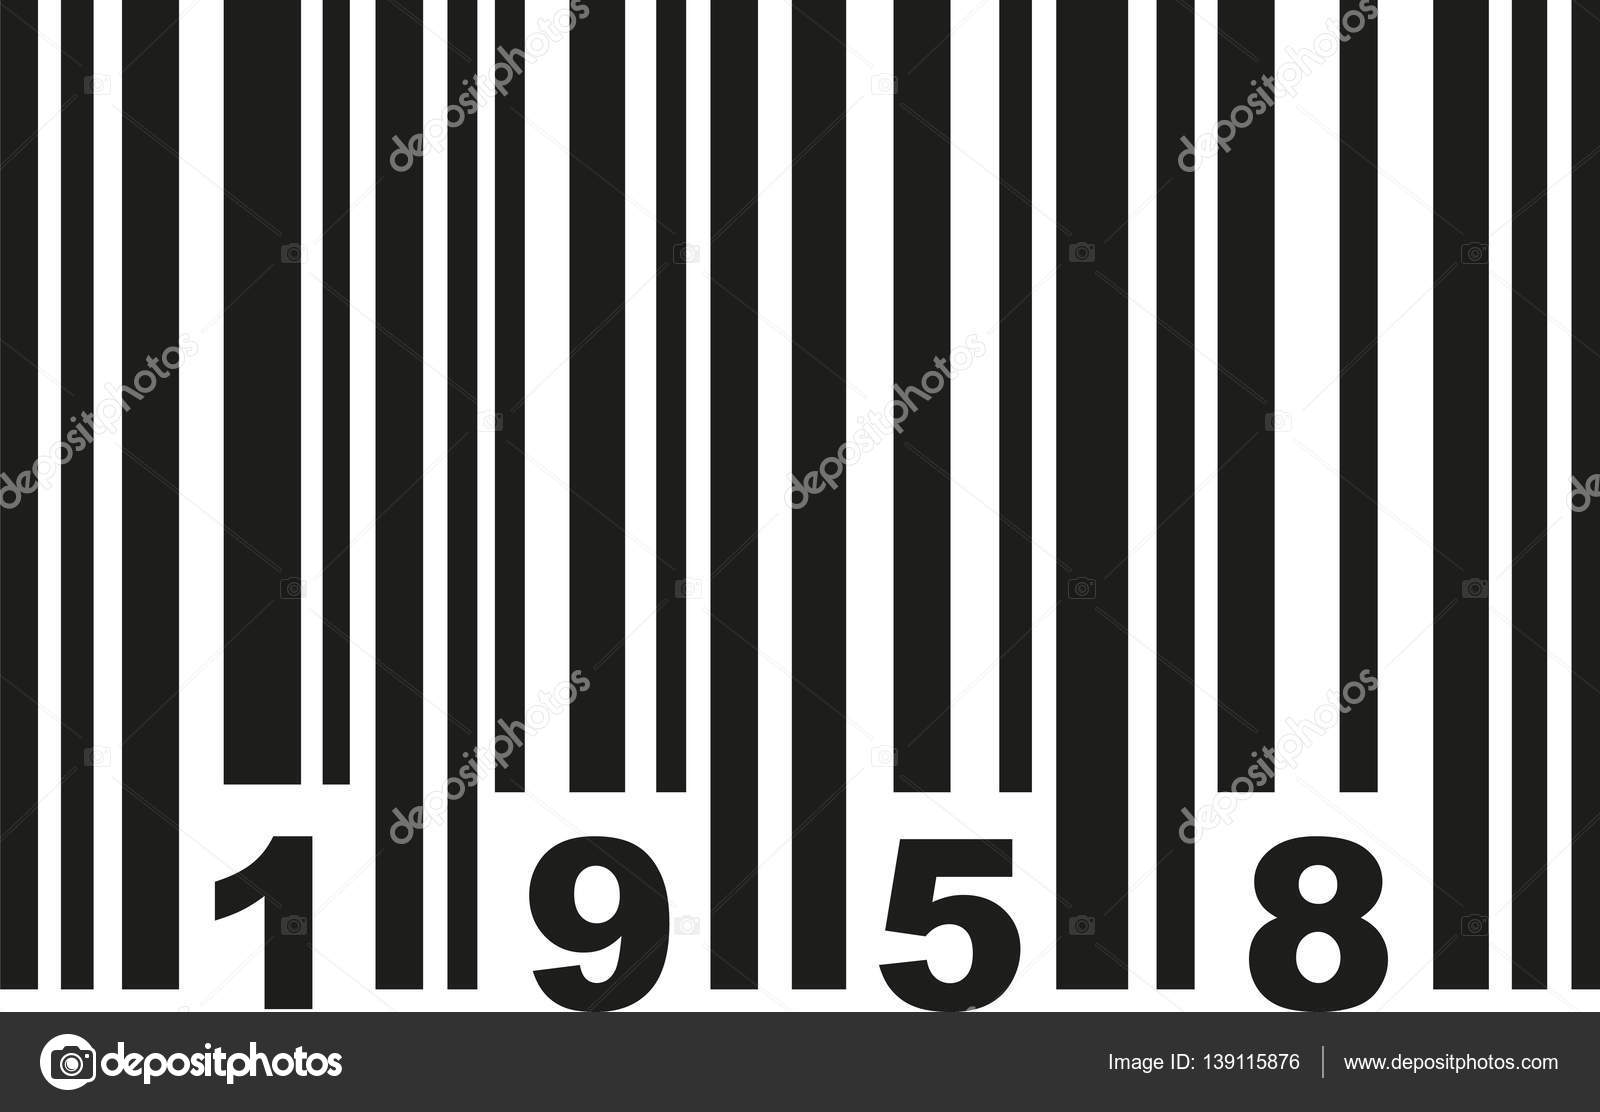 Barcode 1958 price vector — Vector by miceking